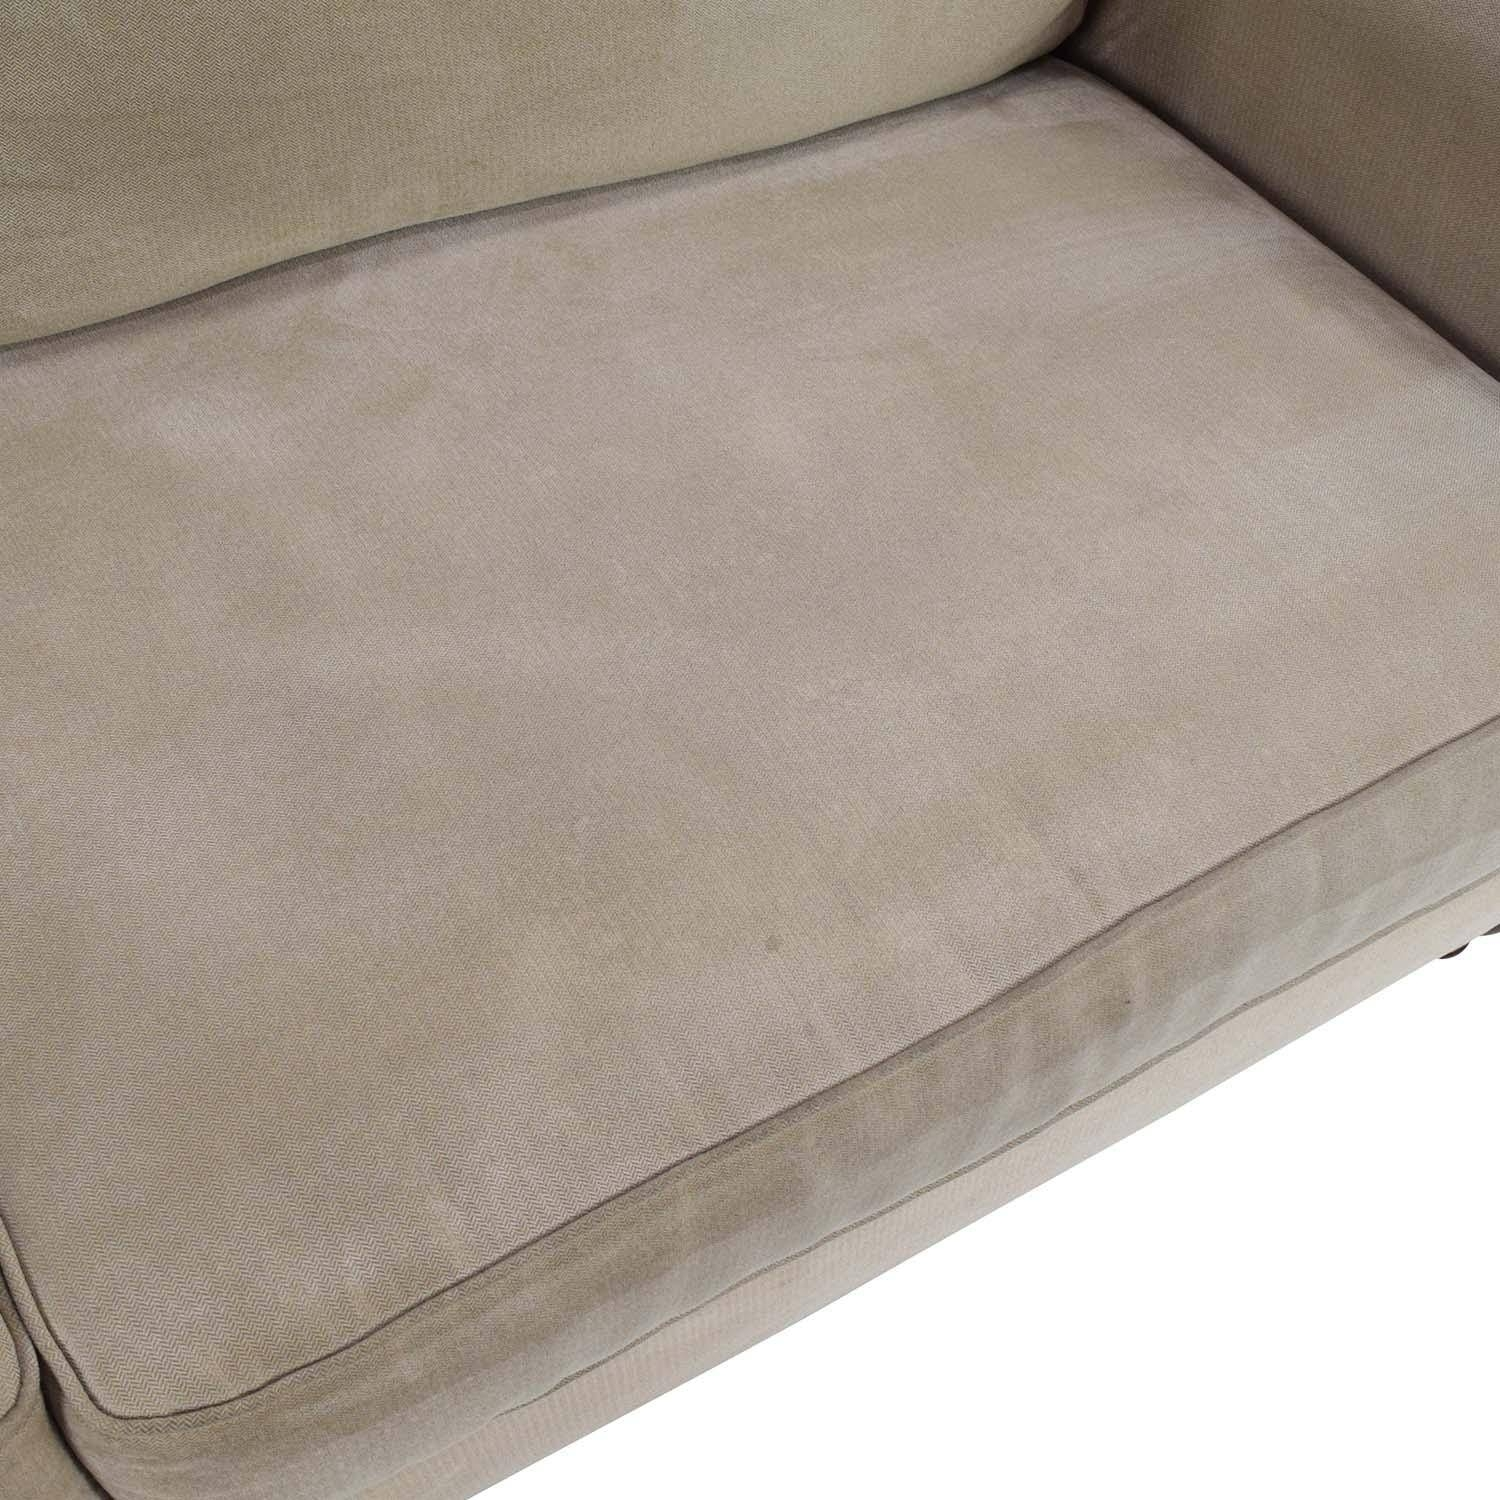 20+ Choices Of Pier 1 Sofa Beds   Sofa Ideas with Pier 1 Sofa Beds (Image 4 of 15)